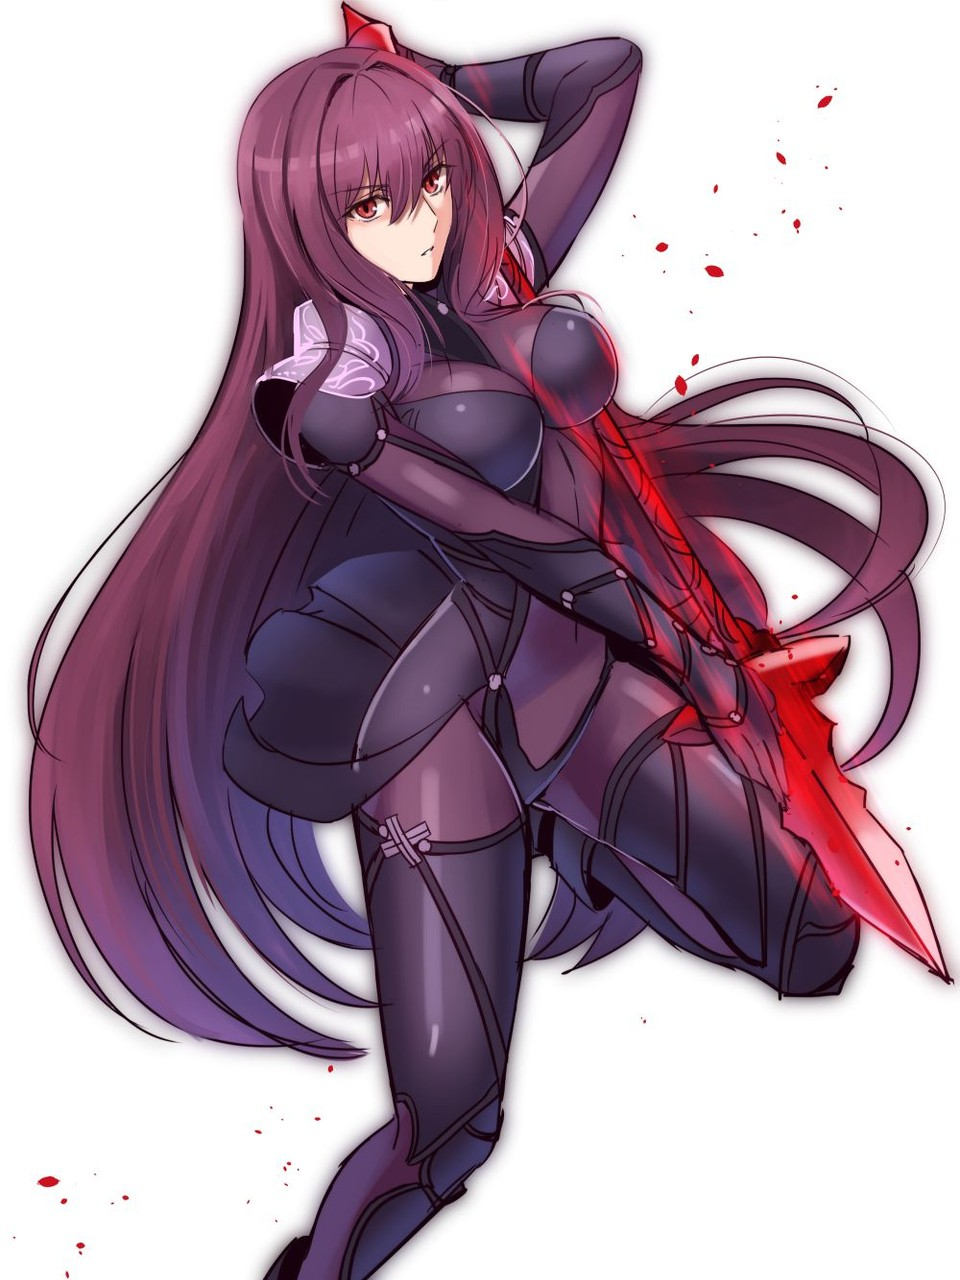 scathach_(fategrand_order)030